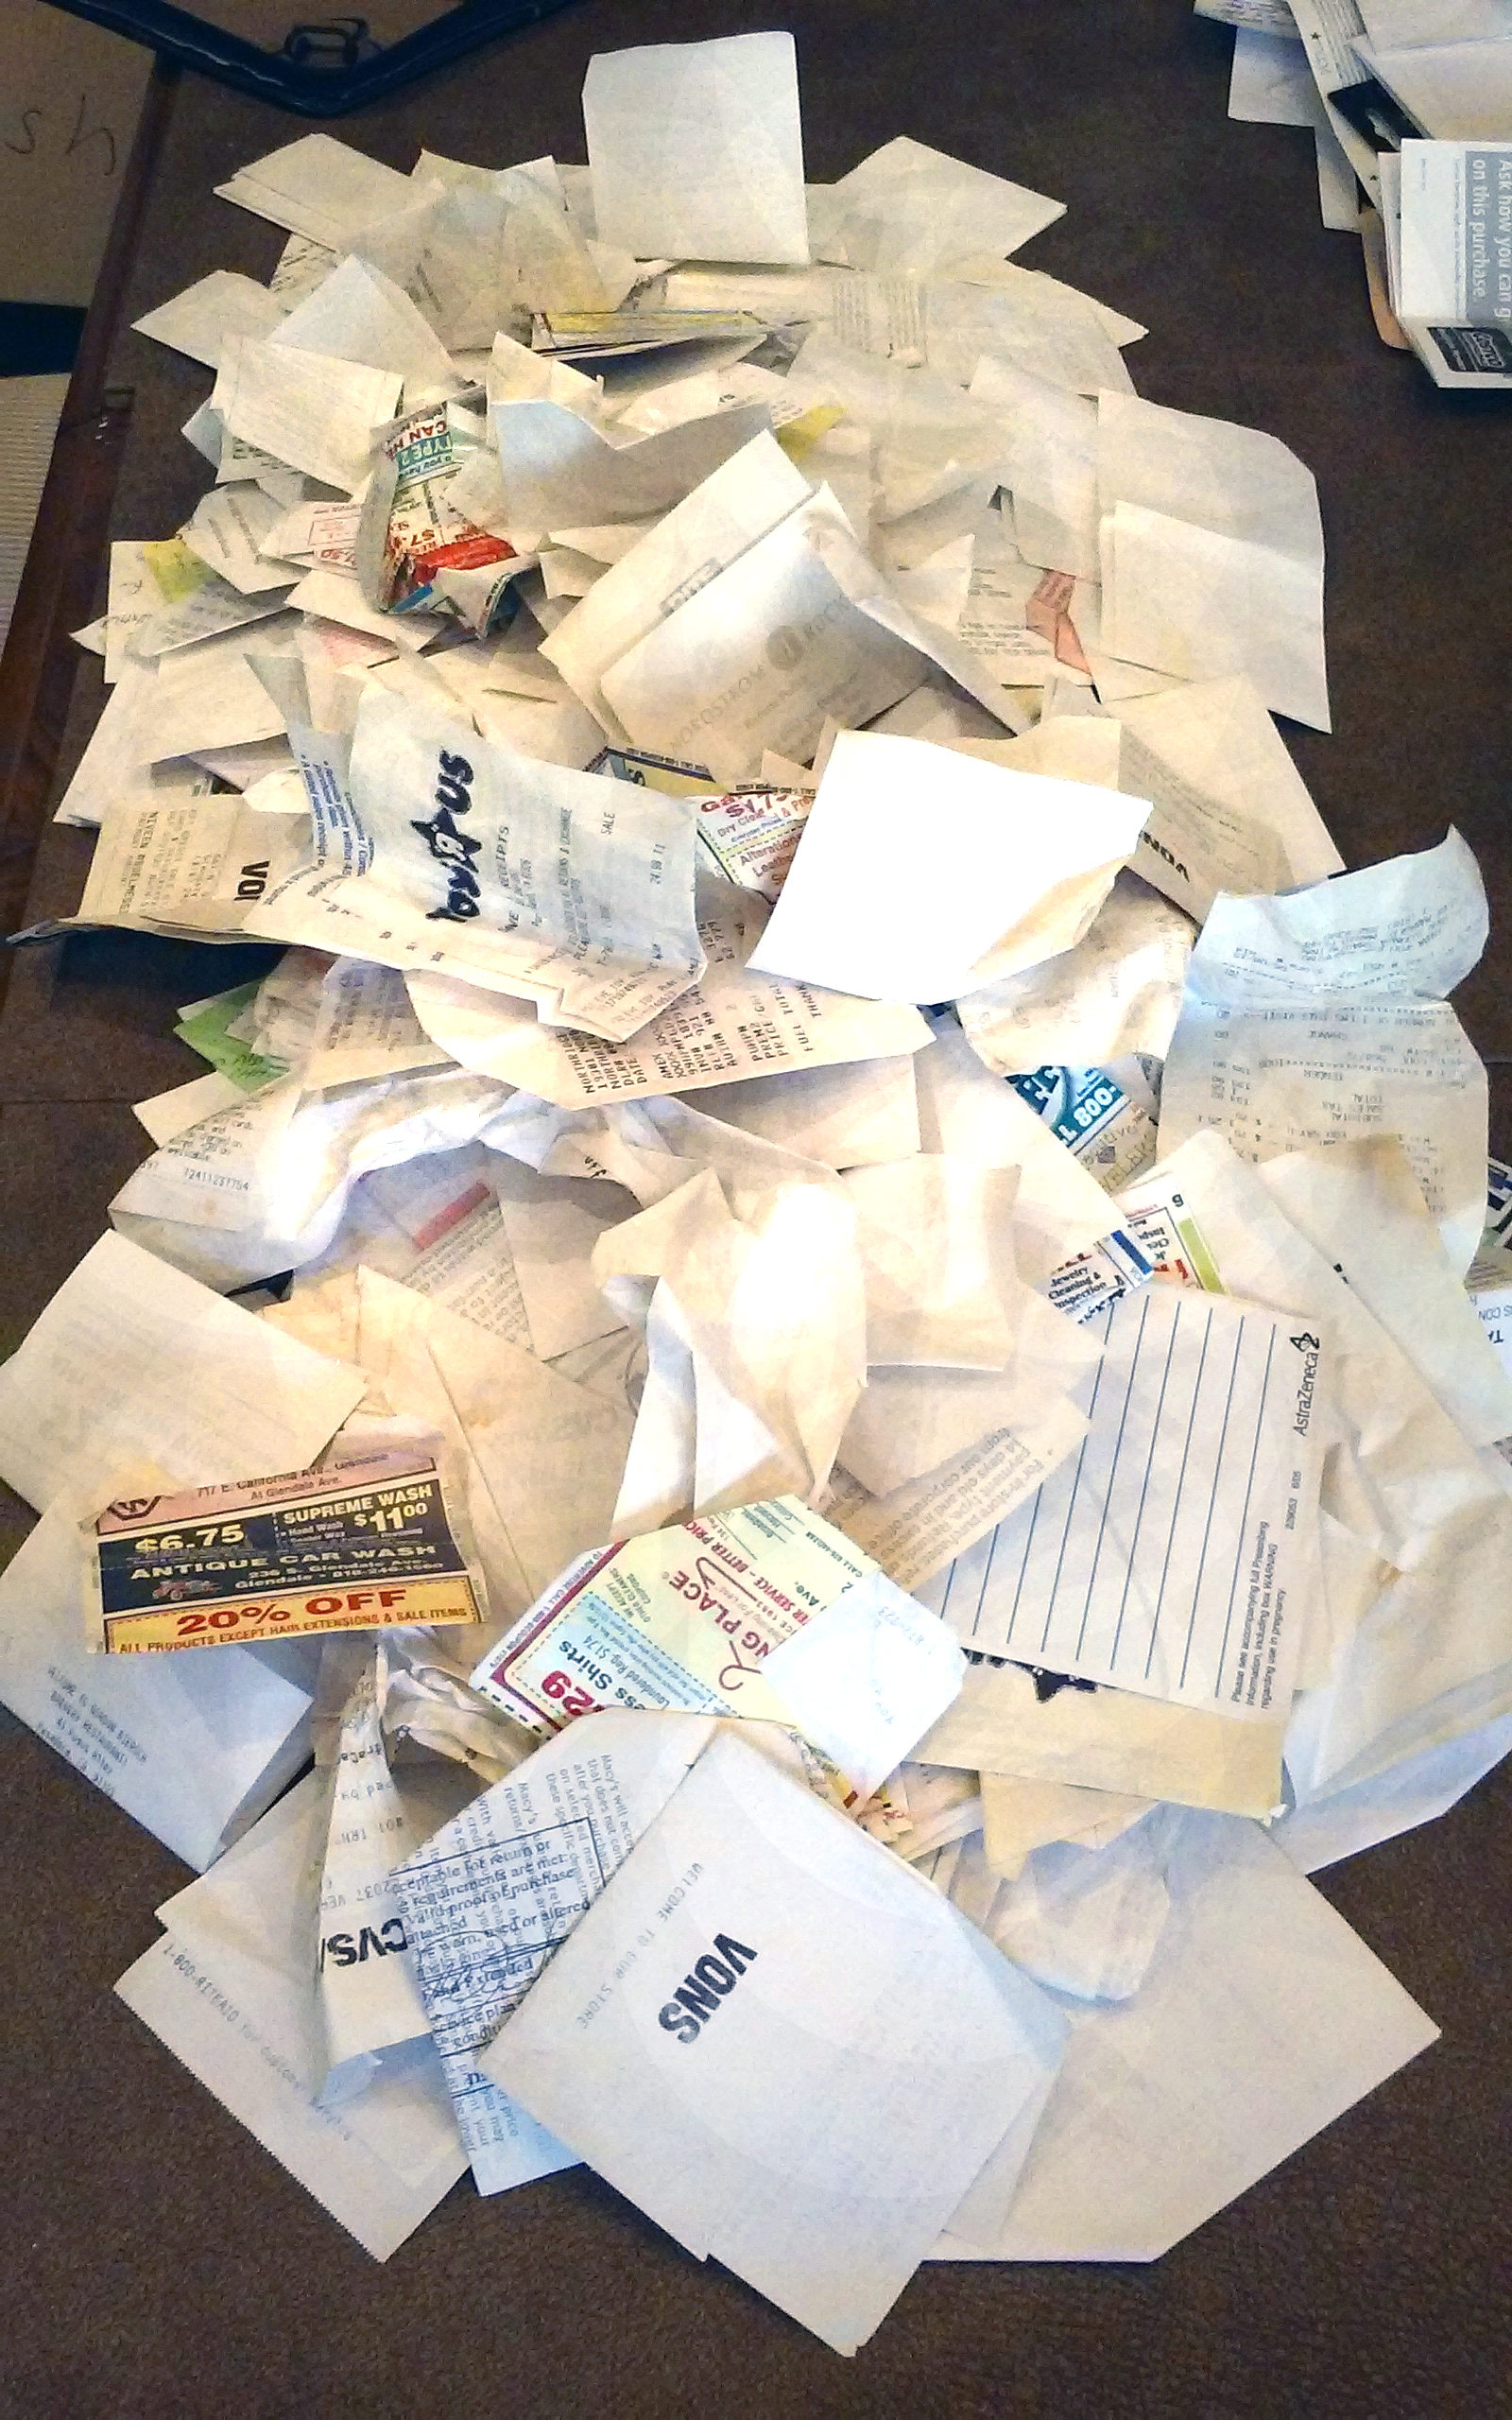 Work Samples - Hope Organizers, Inc. by Professional Organizer Janet Fishman, also known as the paper organizers, serves Los Angeles, Ventura, Santa Barbara, and Orange County, California. We offer paper management, daily money management, senior services, plus organizing and clutter management! http://www.hopeorganizers.com